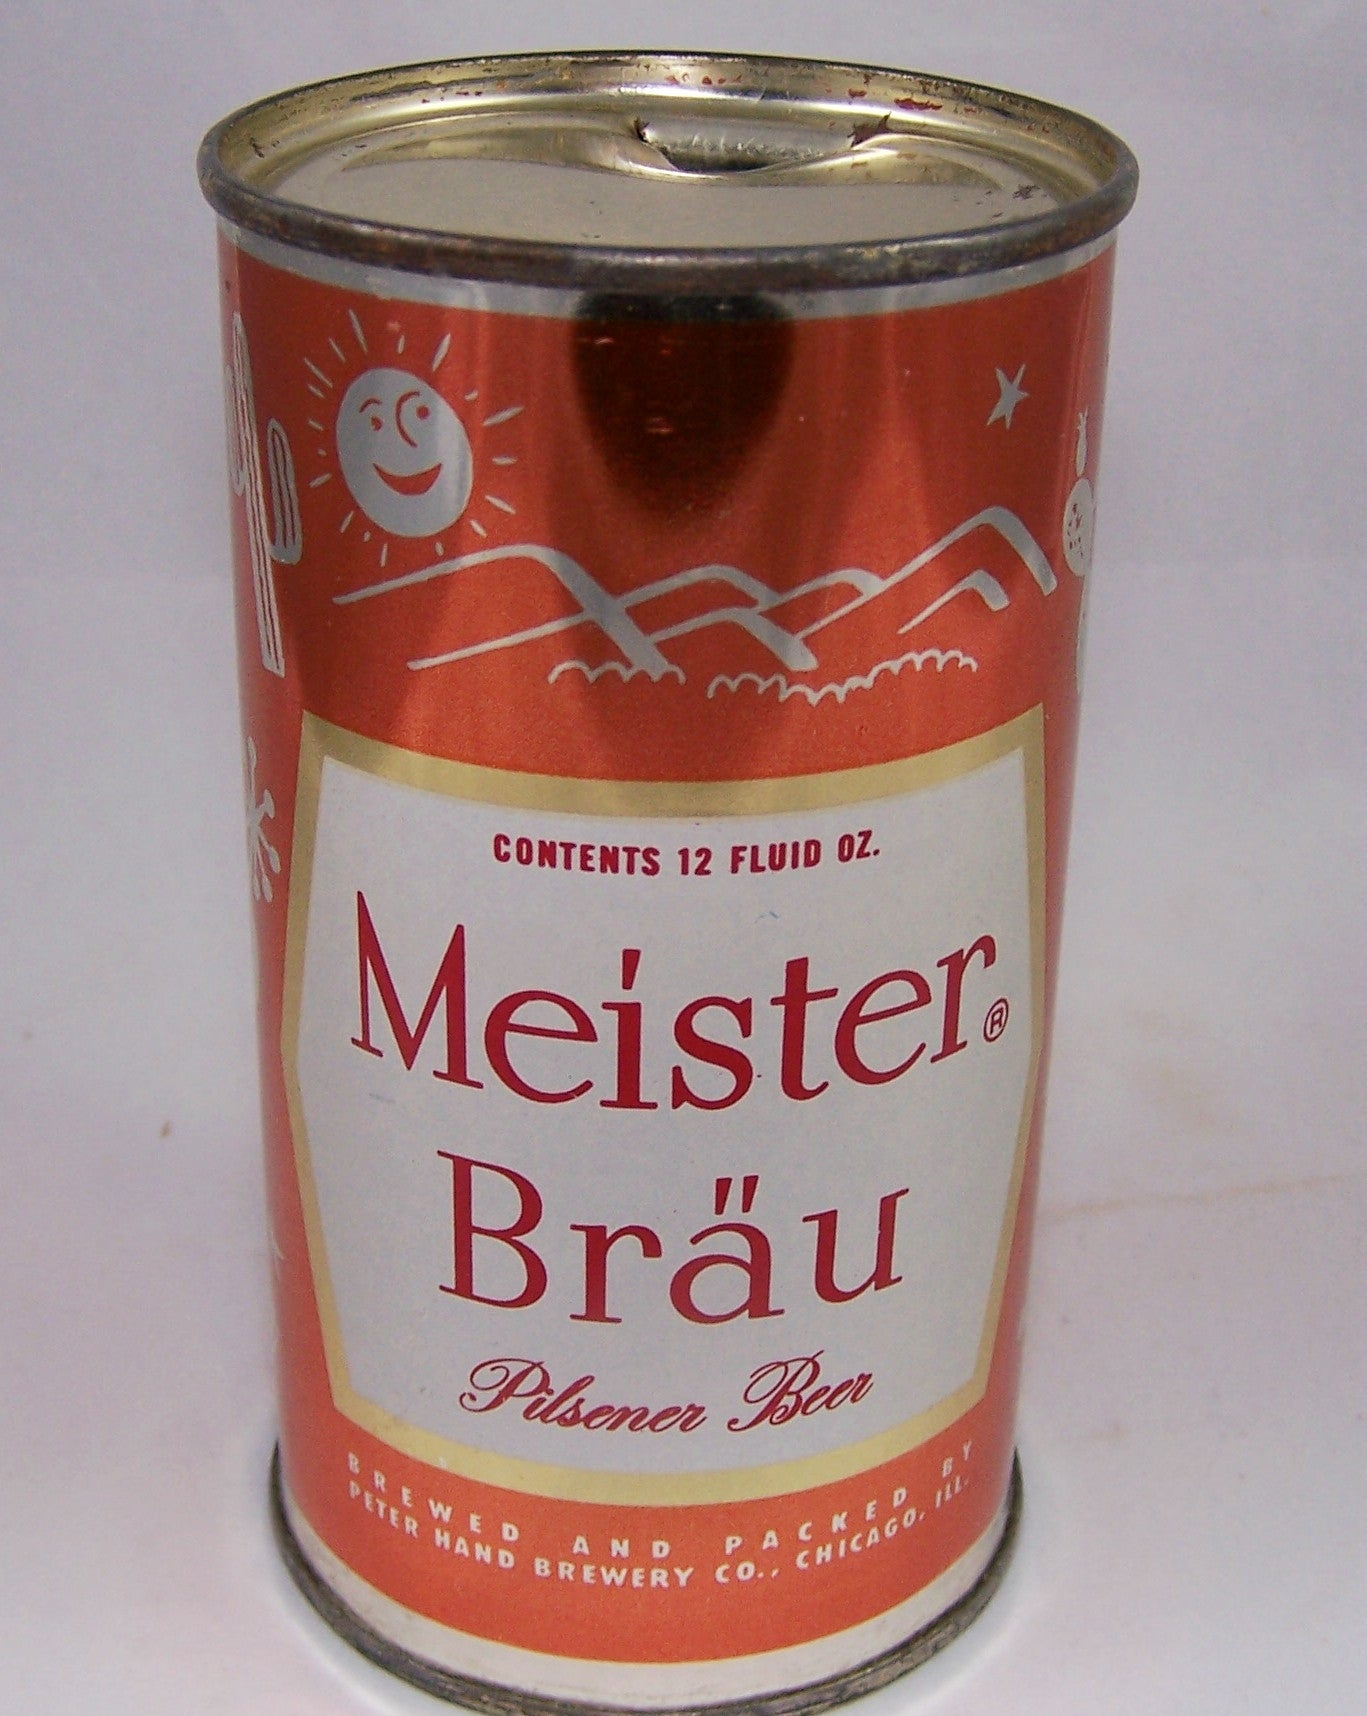 Meister Brau Pilsener Beer, (Ranch) USBC 95-36, Grade 1/1+ Sold on 9/14/15